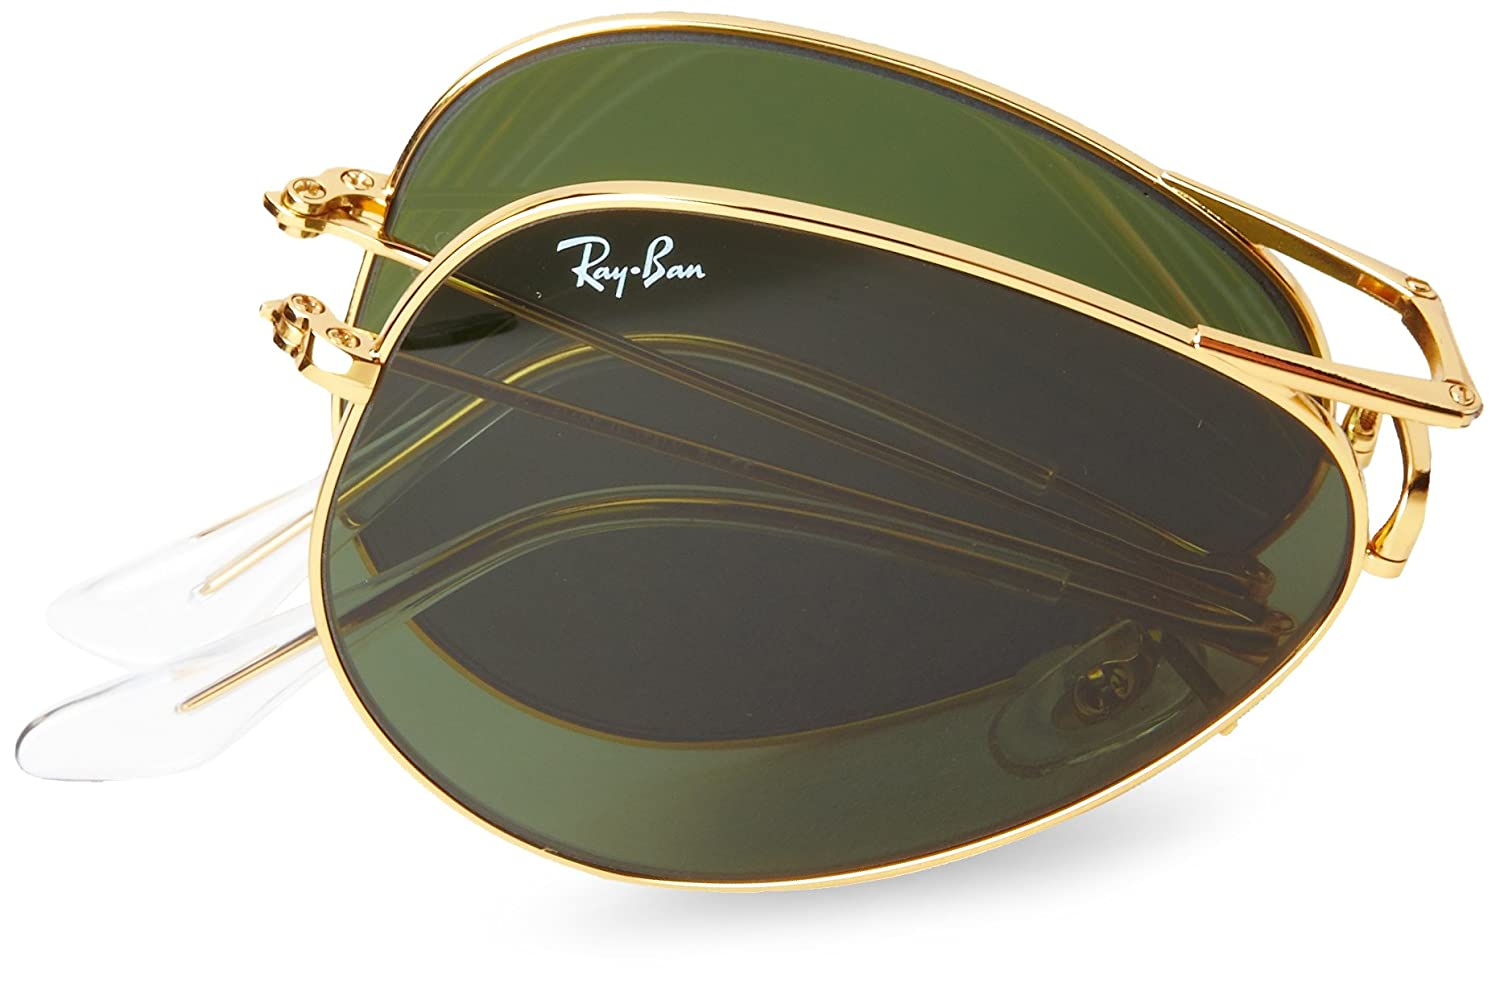 Ray ban sunglasses with price -  Picture 5 Of 5